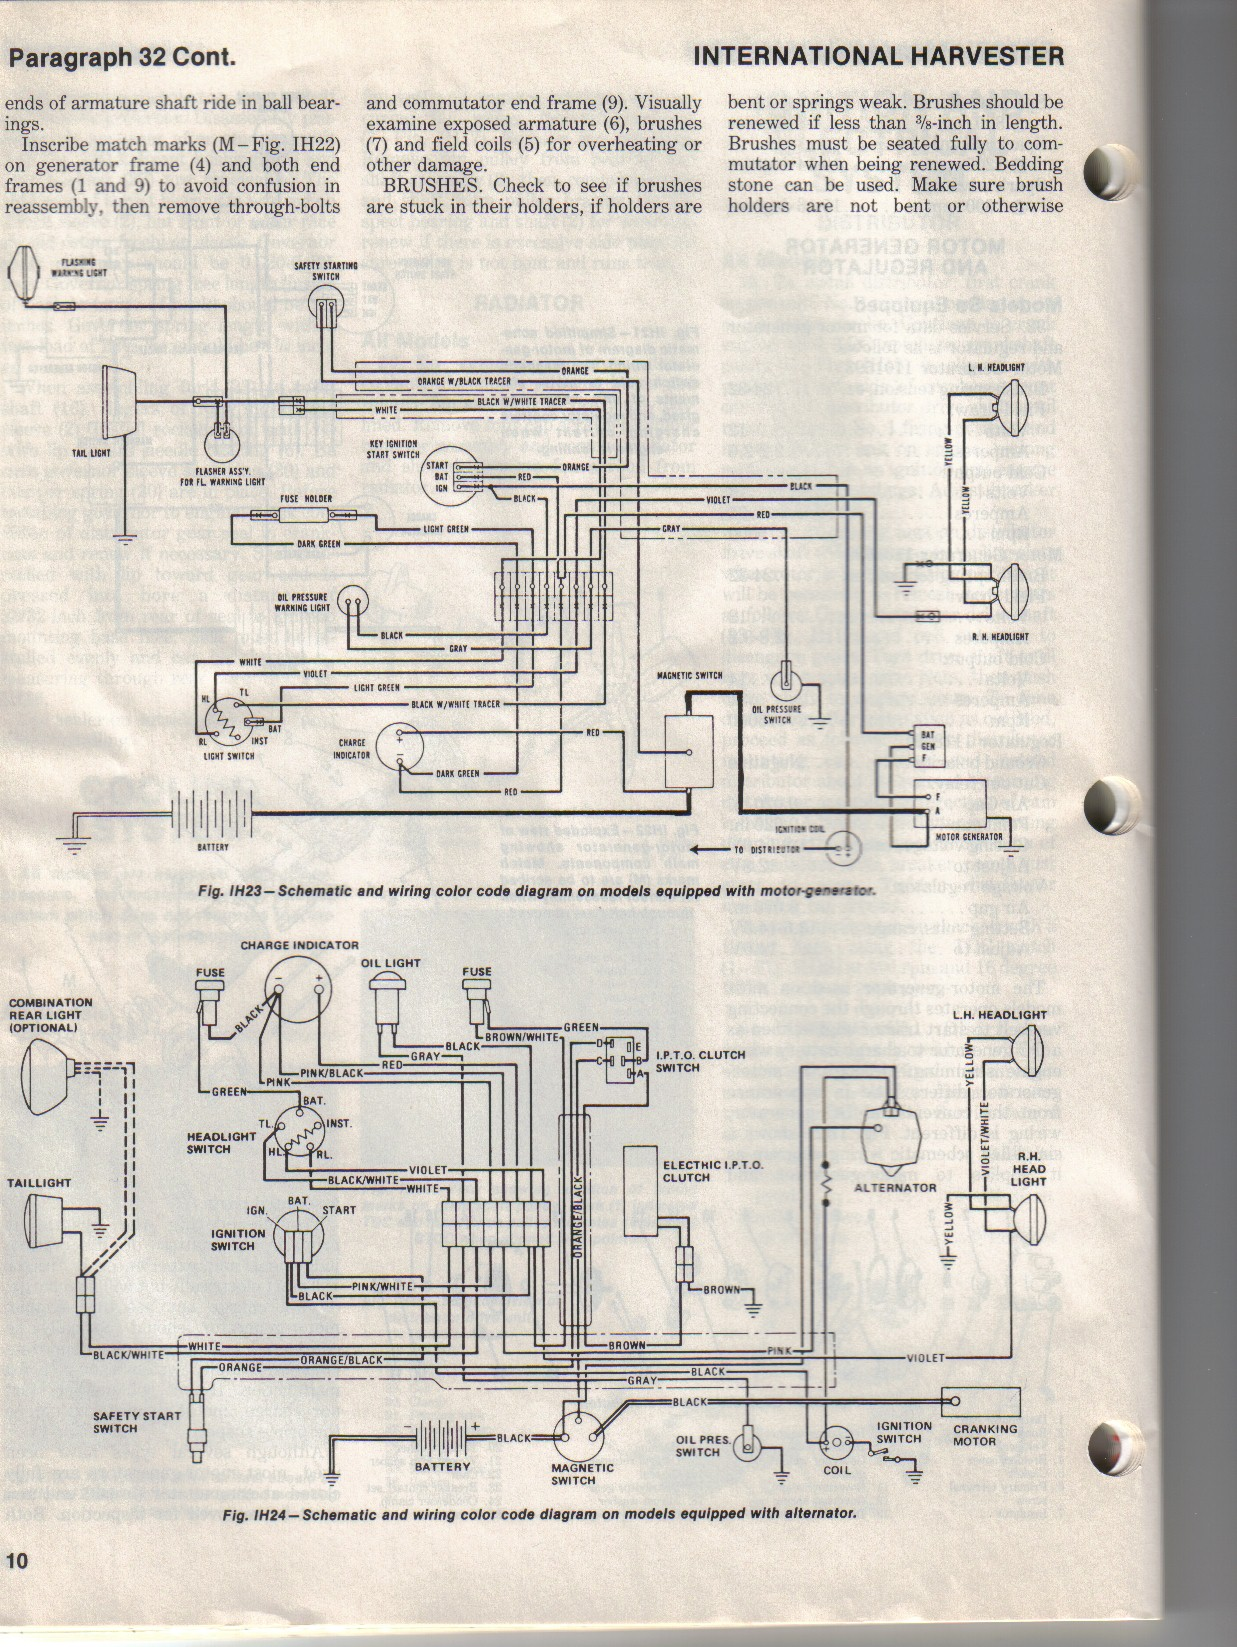 Ih 560 Wiring Diagram | Wiring Diagram Farmall Alternator Wiring Diagram on